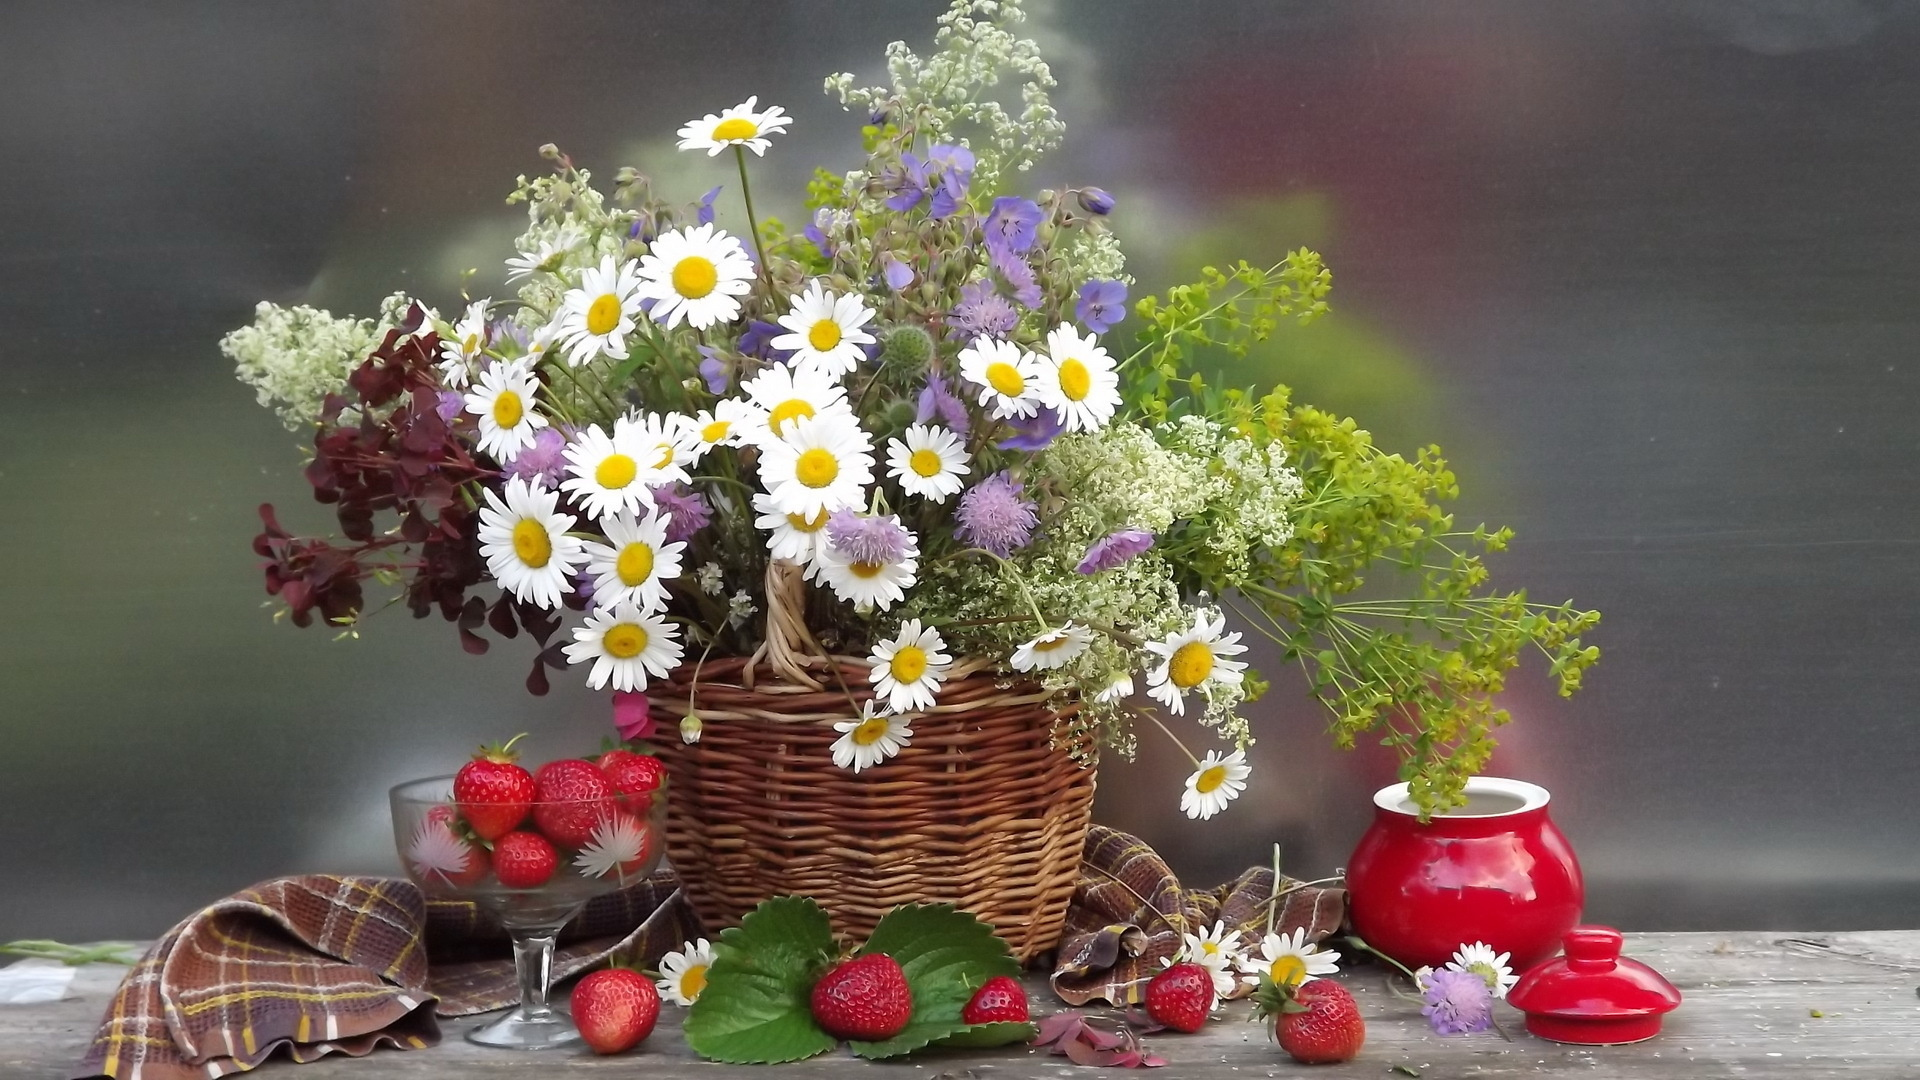 Bouquet Flowers Flower Basket Chamomile Wallpaper 90726